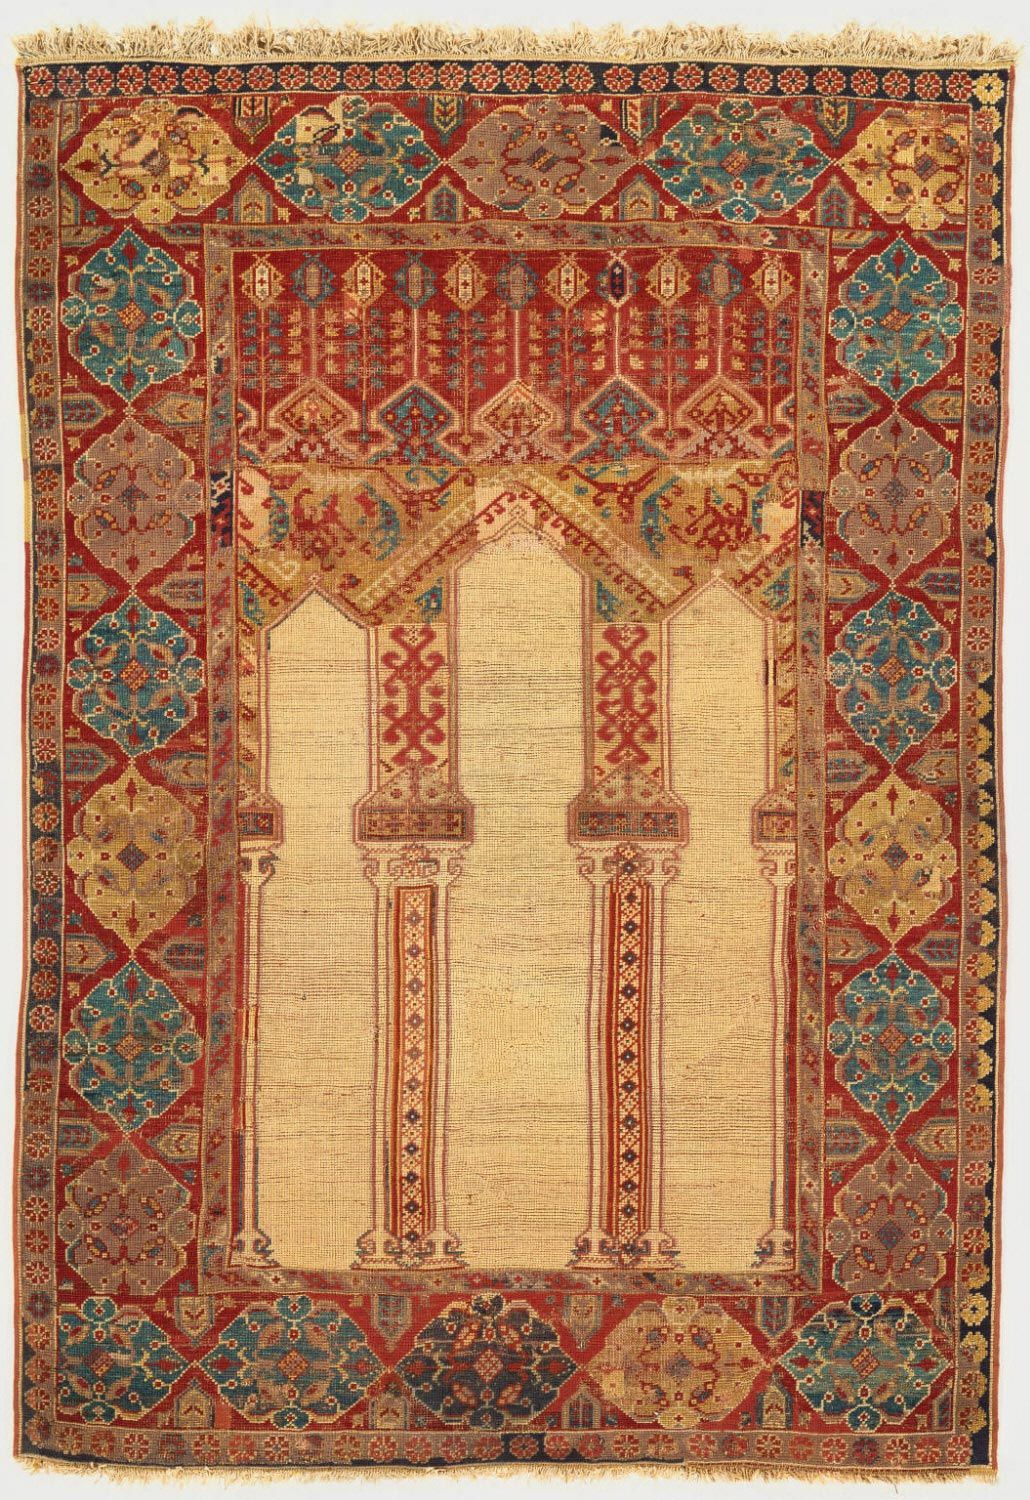 Philadelphia Museum of Art - Collections Object : Columnar Prayer Rug Columnar Prayer Rug  Artist/maker unknown, Turkish  Geography: Made in Anatolia, Turkey, Asia